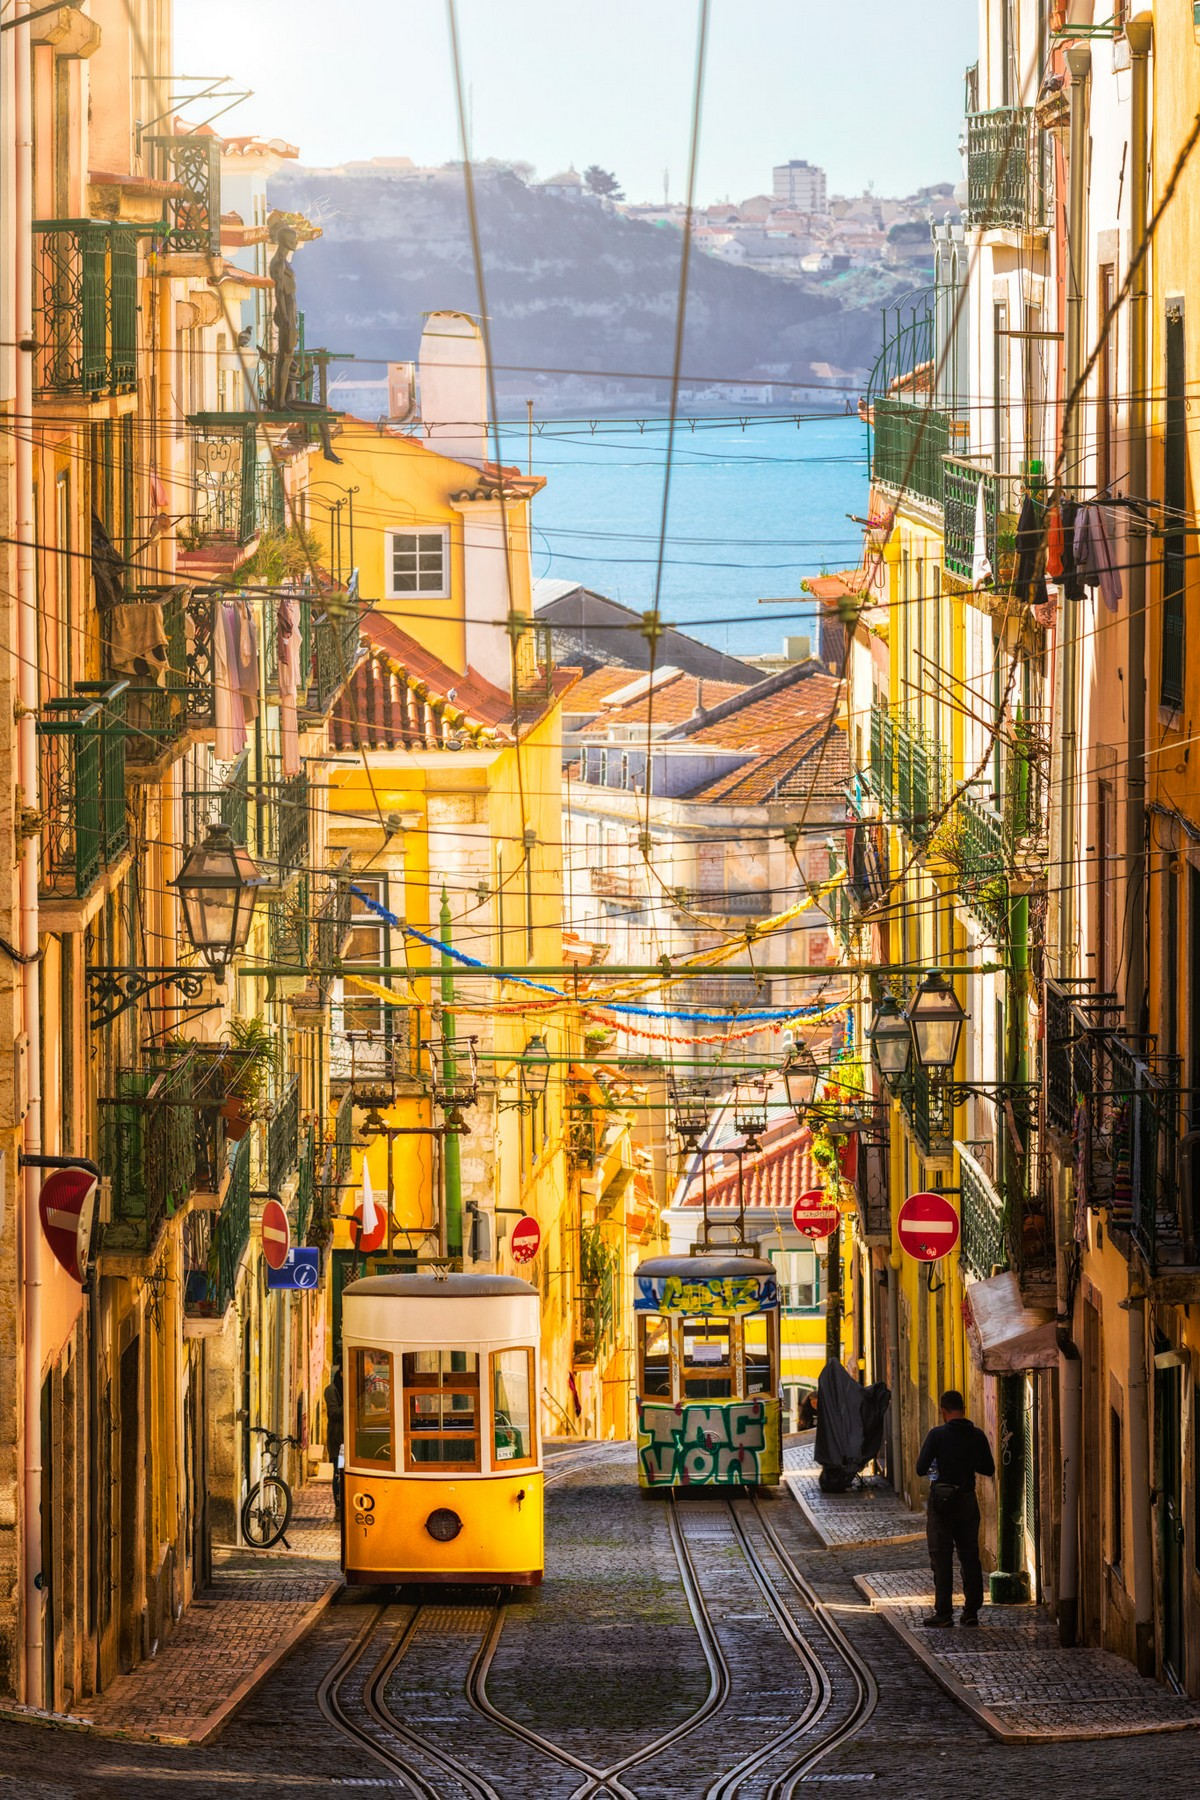 Lisbon Is The World's Leading City Break Destination 2019 world's leading city break destination 2019 Lisbon Is The World's Leading City Break Destination 2019 Lisbon Is The Worlds Leading City Break Destination 2019 4